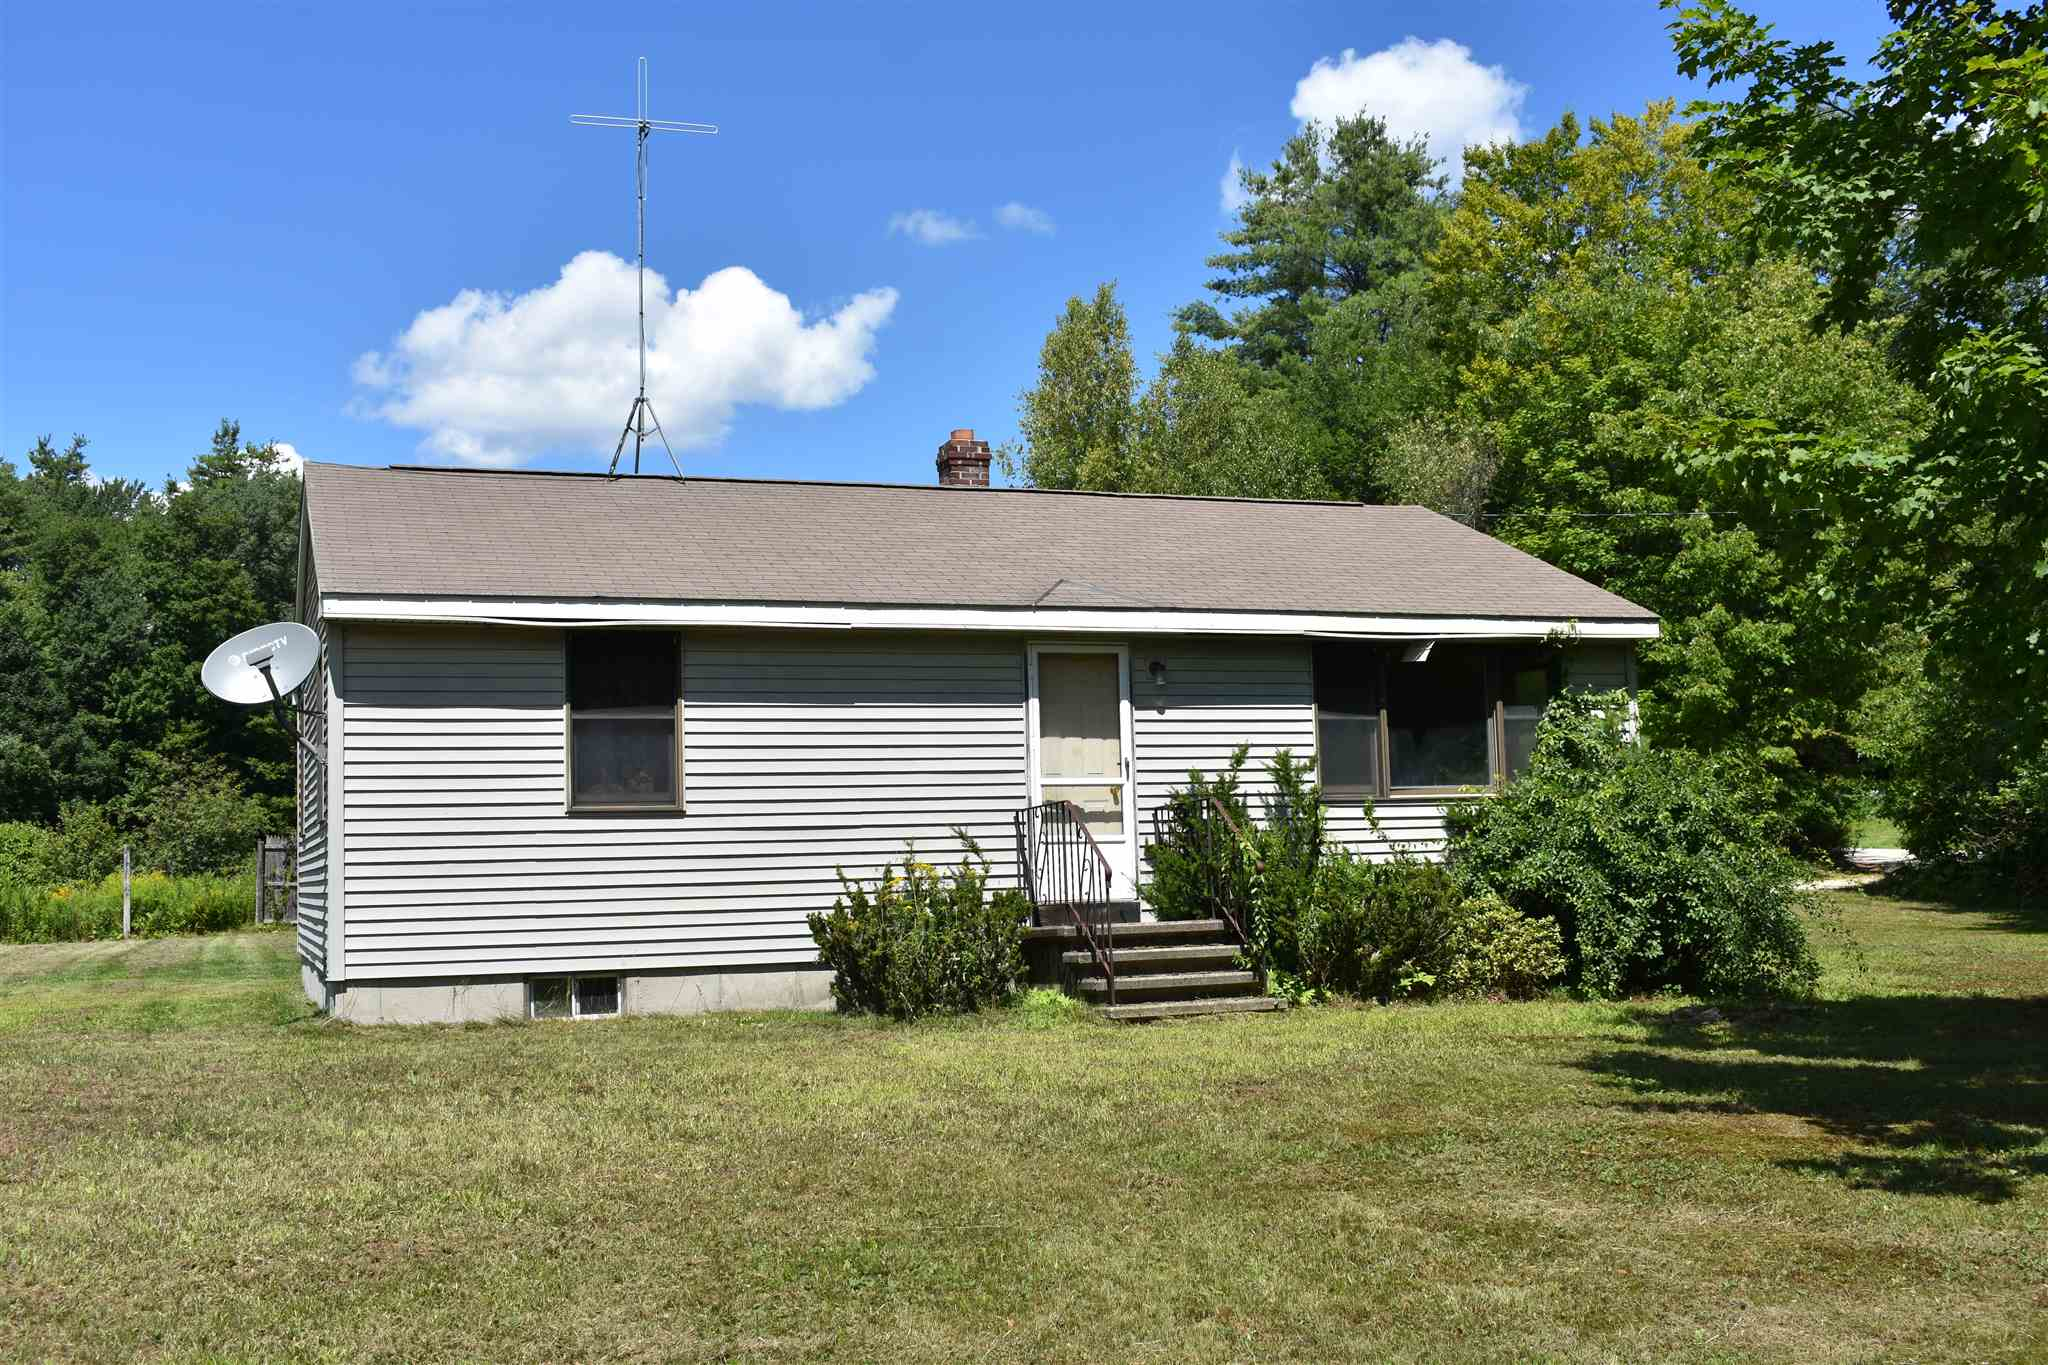 MLS 4820601: 5 Dean Farm Road, Jaffrey NH